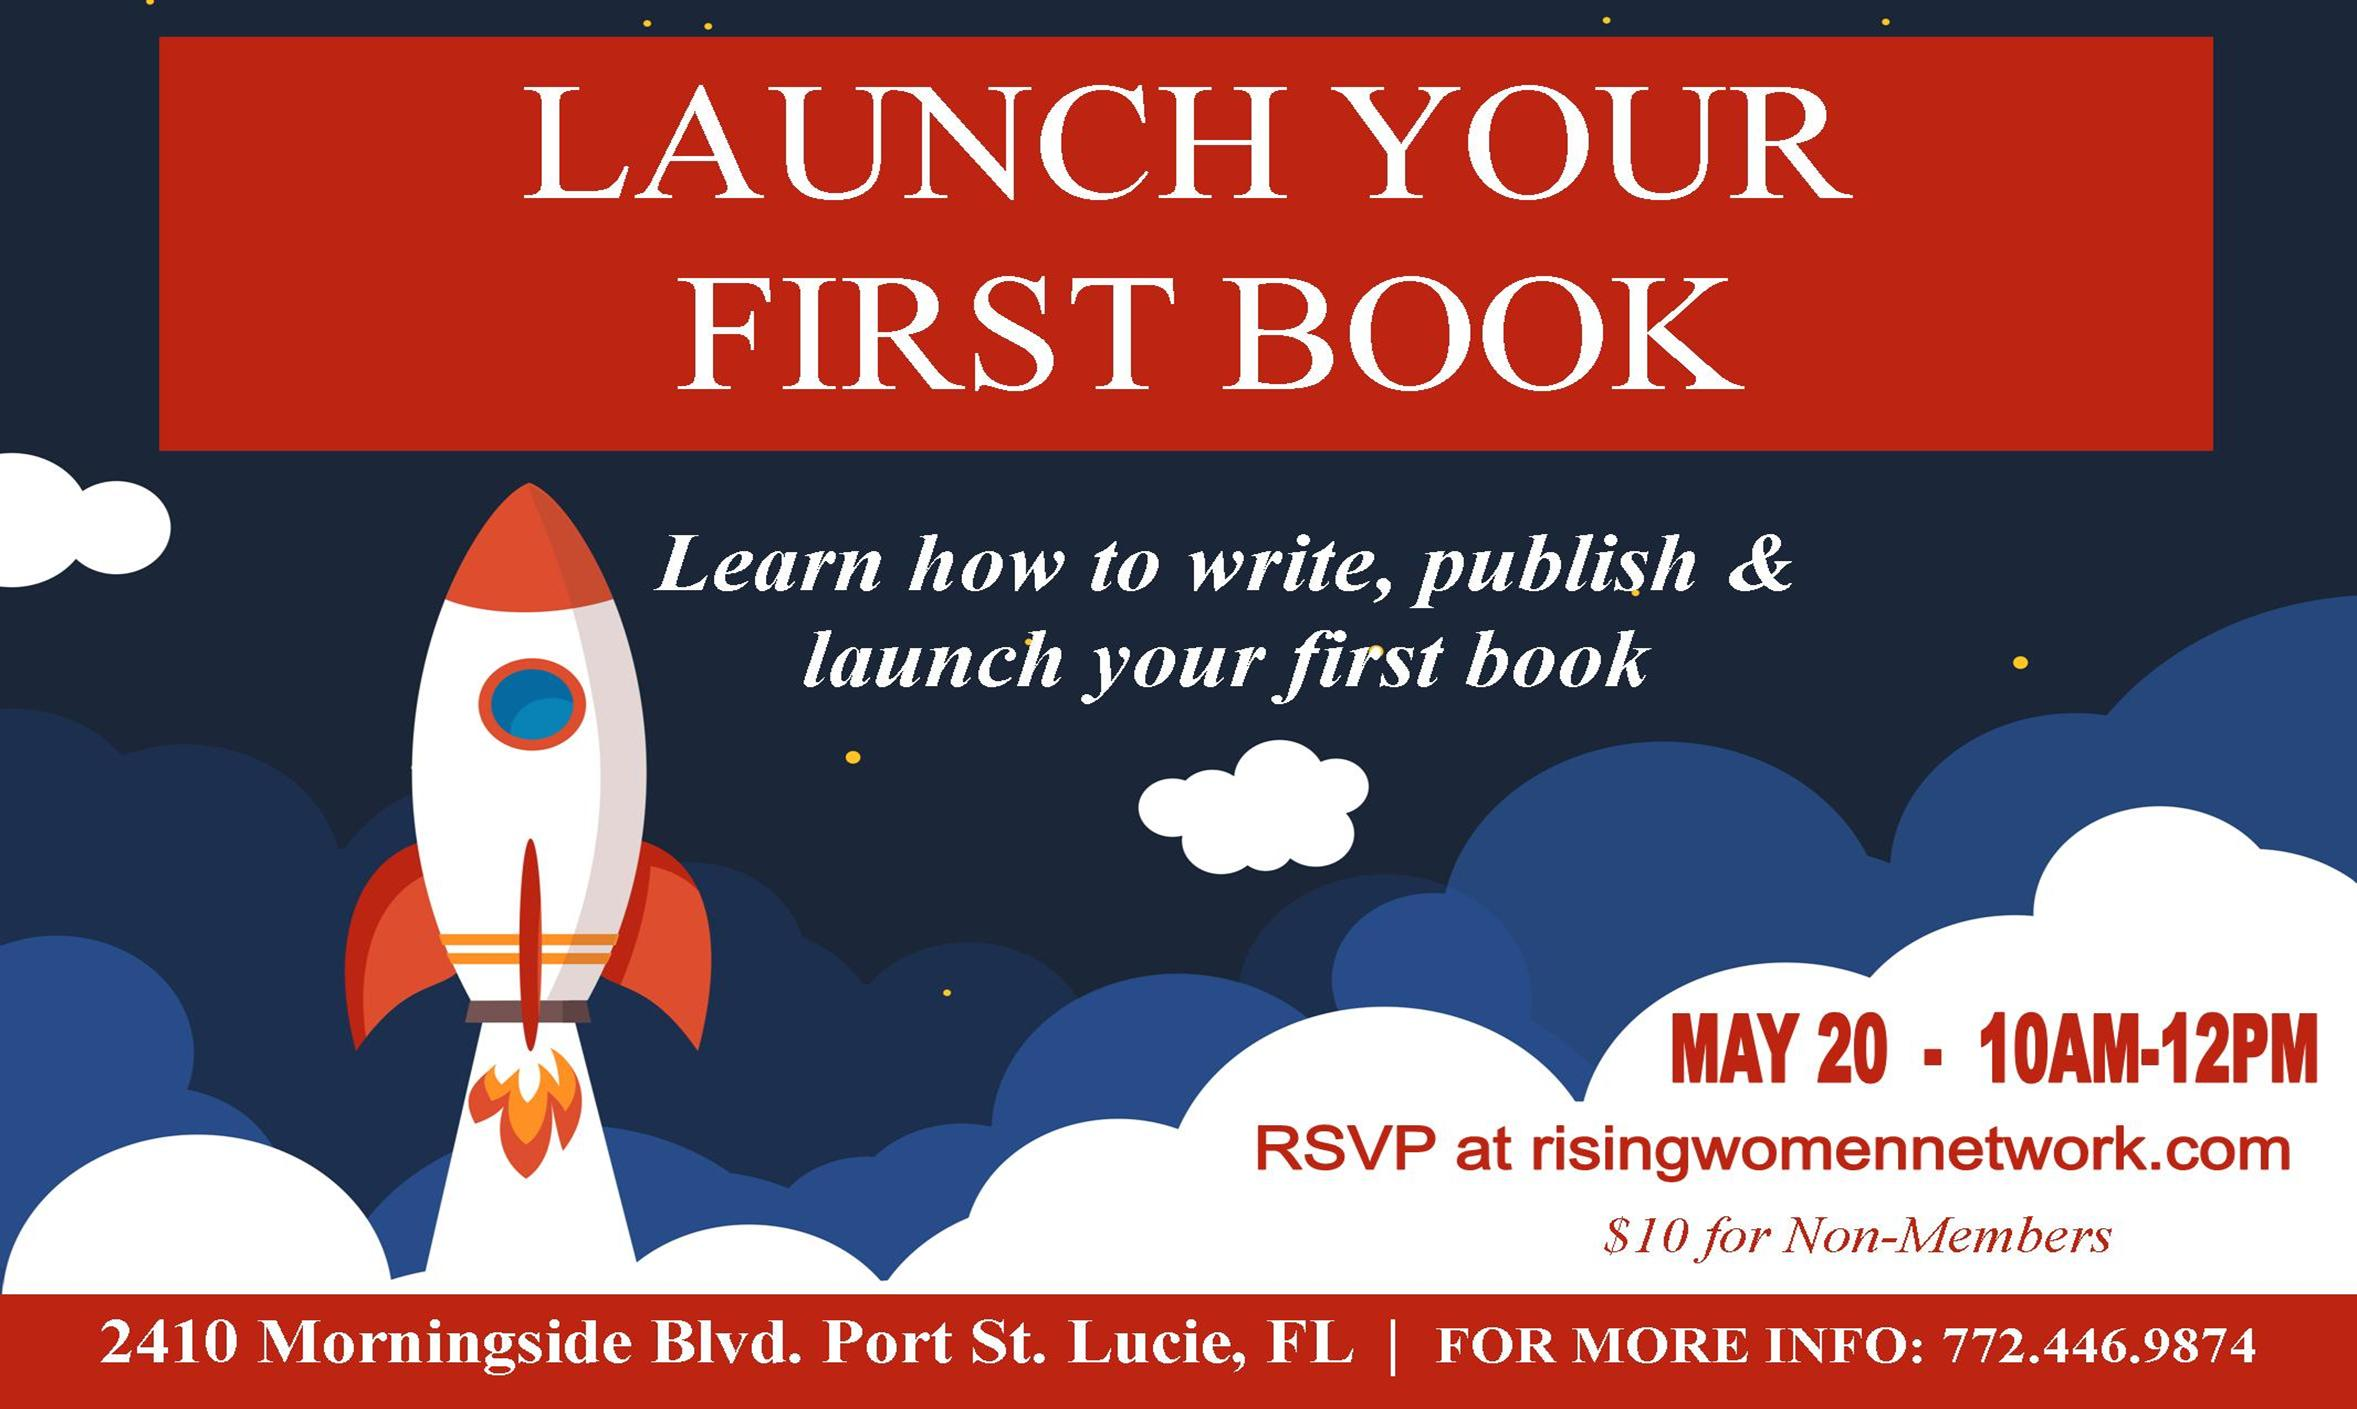 Launch your First Book is an informative, helpful workshop that is great for first-time authors and those who are multi-published veterans of the industry.